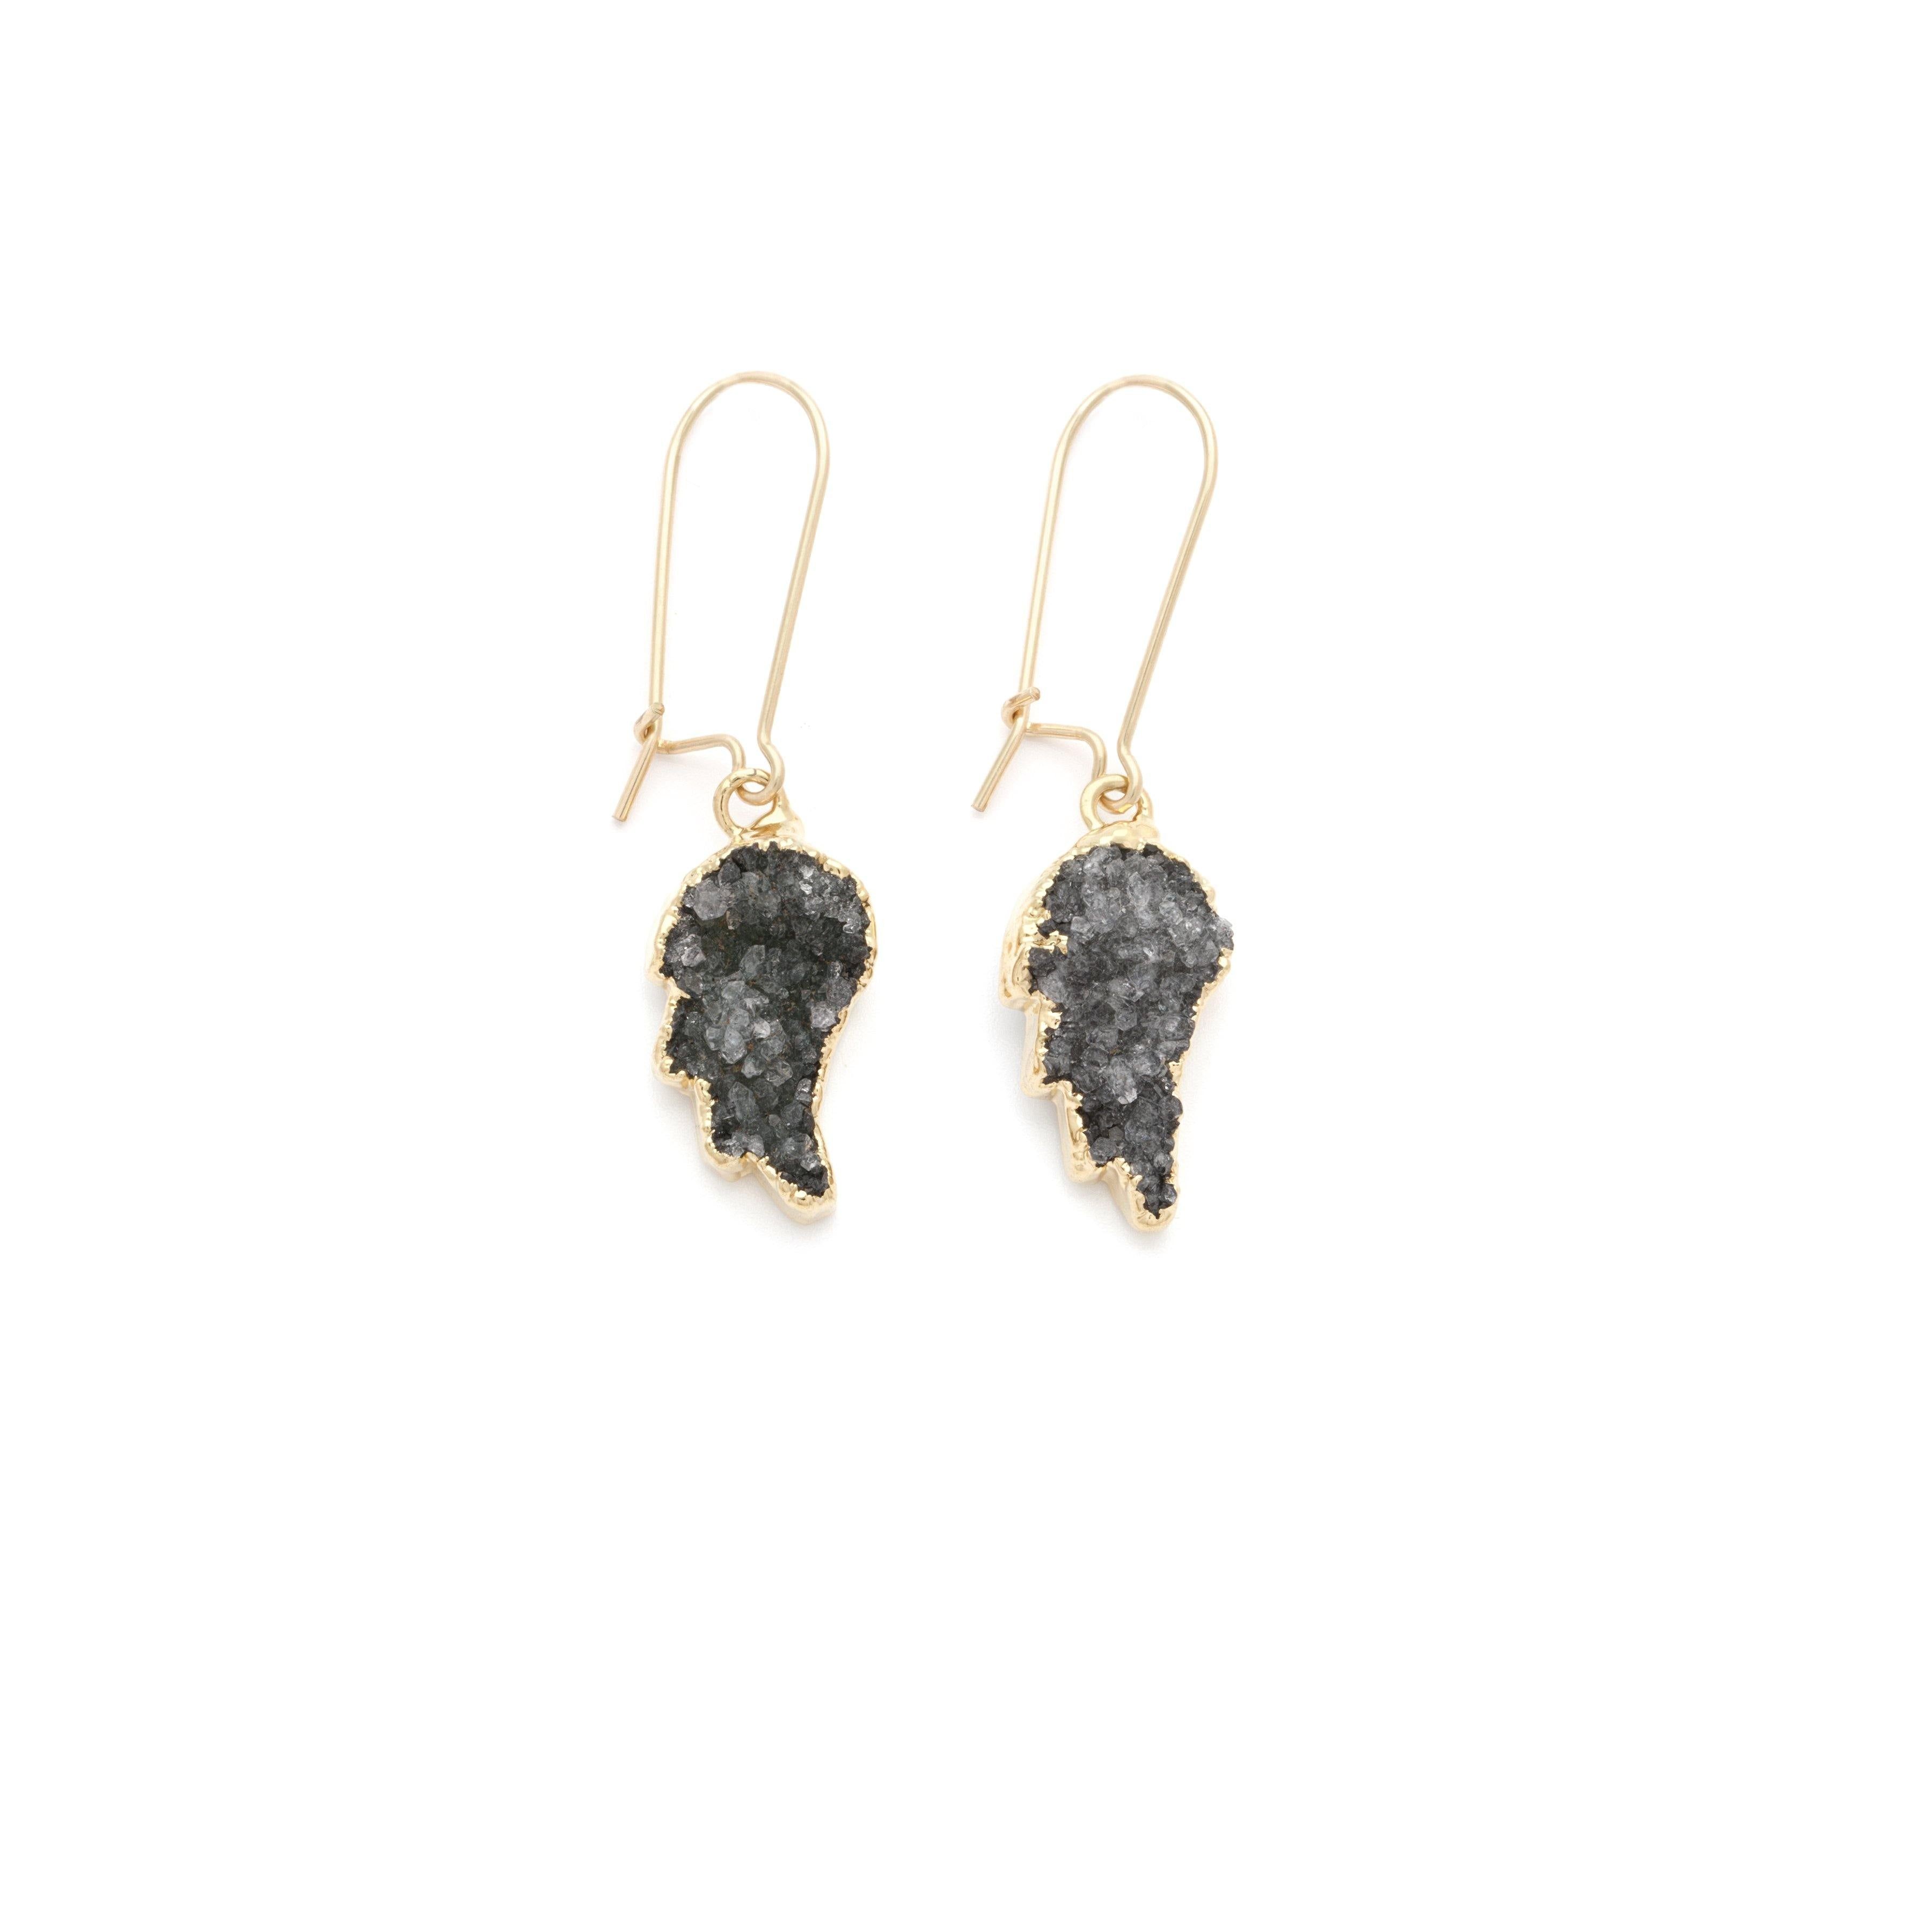 Angel Wing Earrings - Irit Sorokin Designs Canadian handmade jewelry